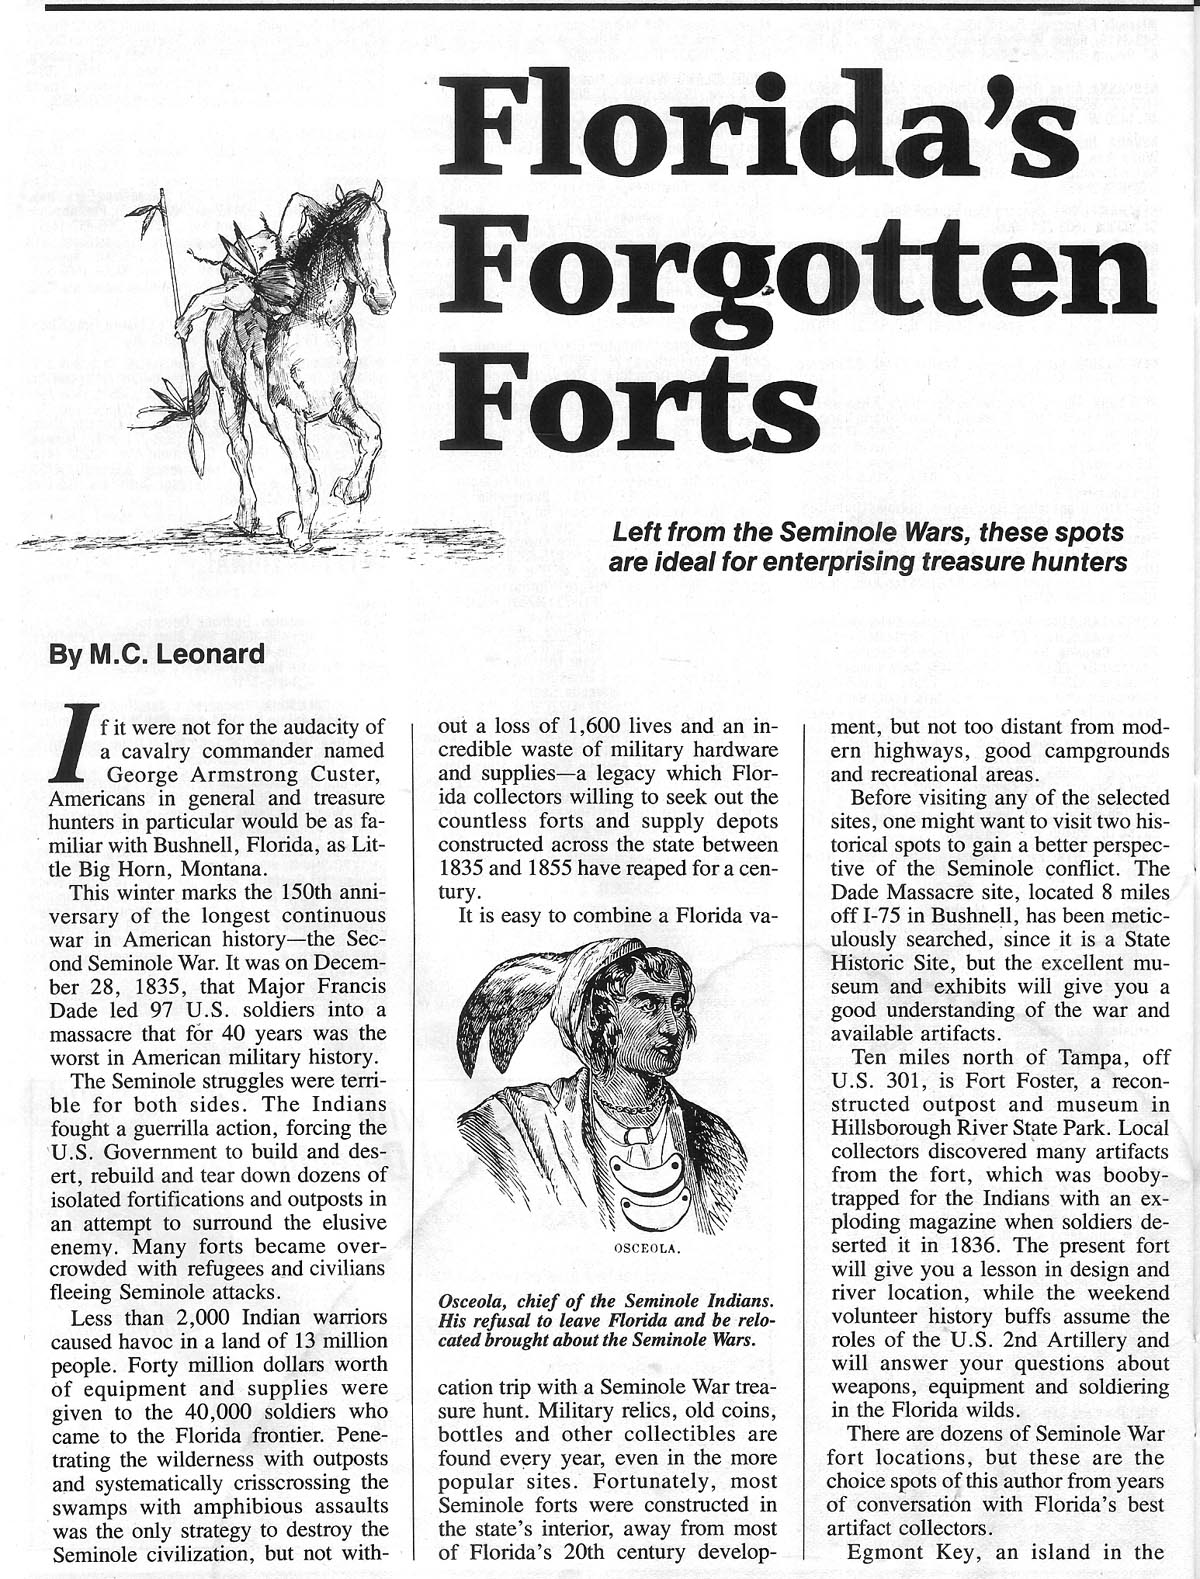 Article on Florida treasure sites by M. C. Bob Leonard